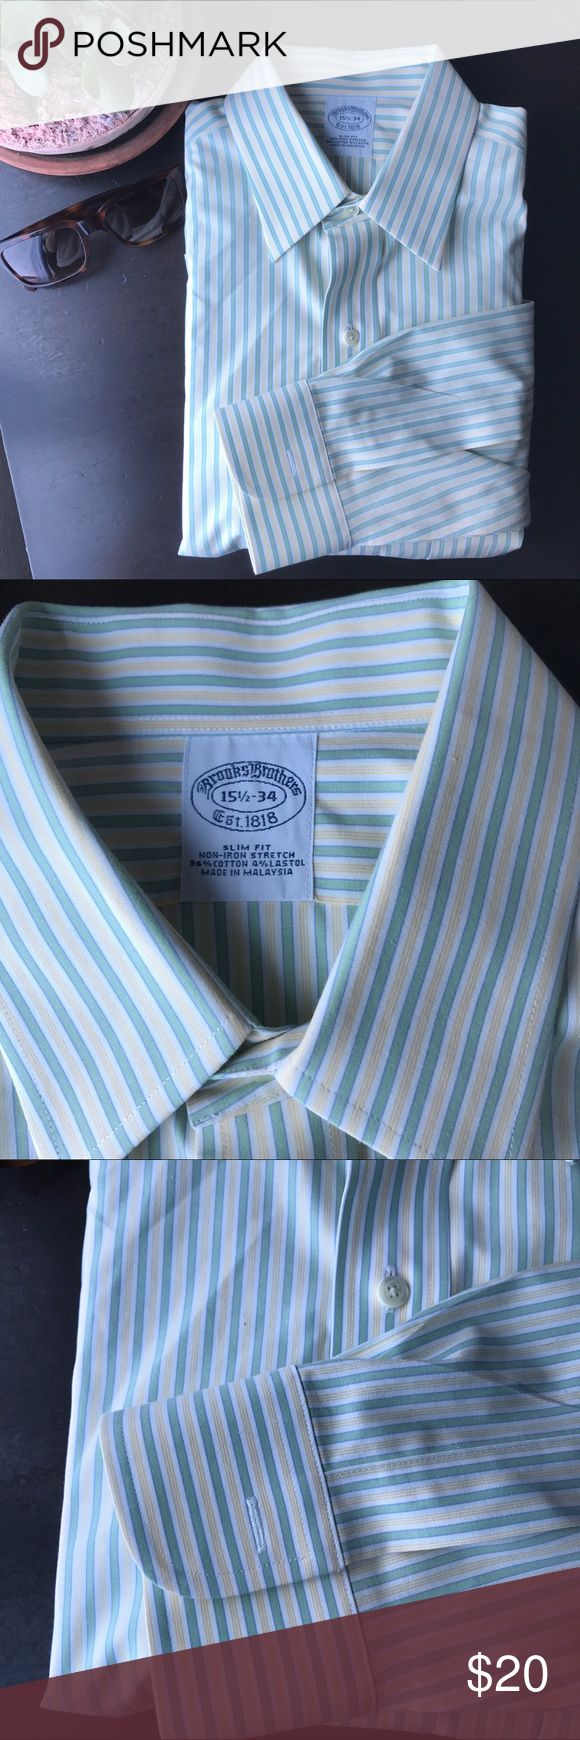 {Brooks Brothers} Slim Fit Dress Shirt A light green and yellow striped shirt in Brooks Brothers slim fit, featuring front chest pocket & rounded cuffs. Brooks Brothers Shirts Dress Shirts